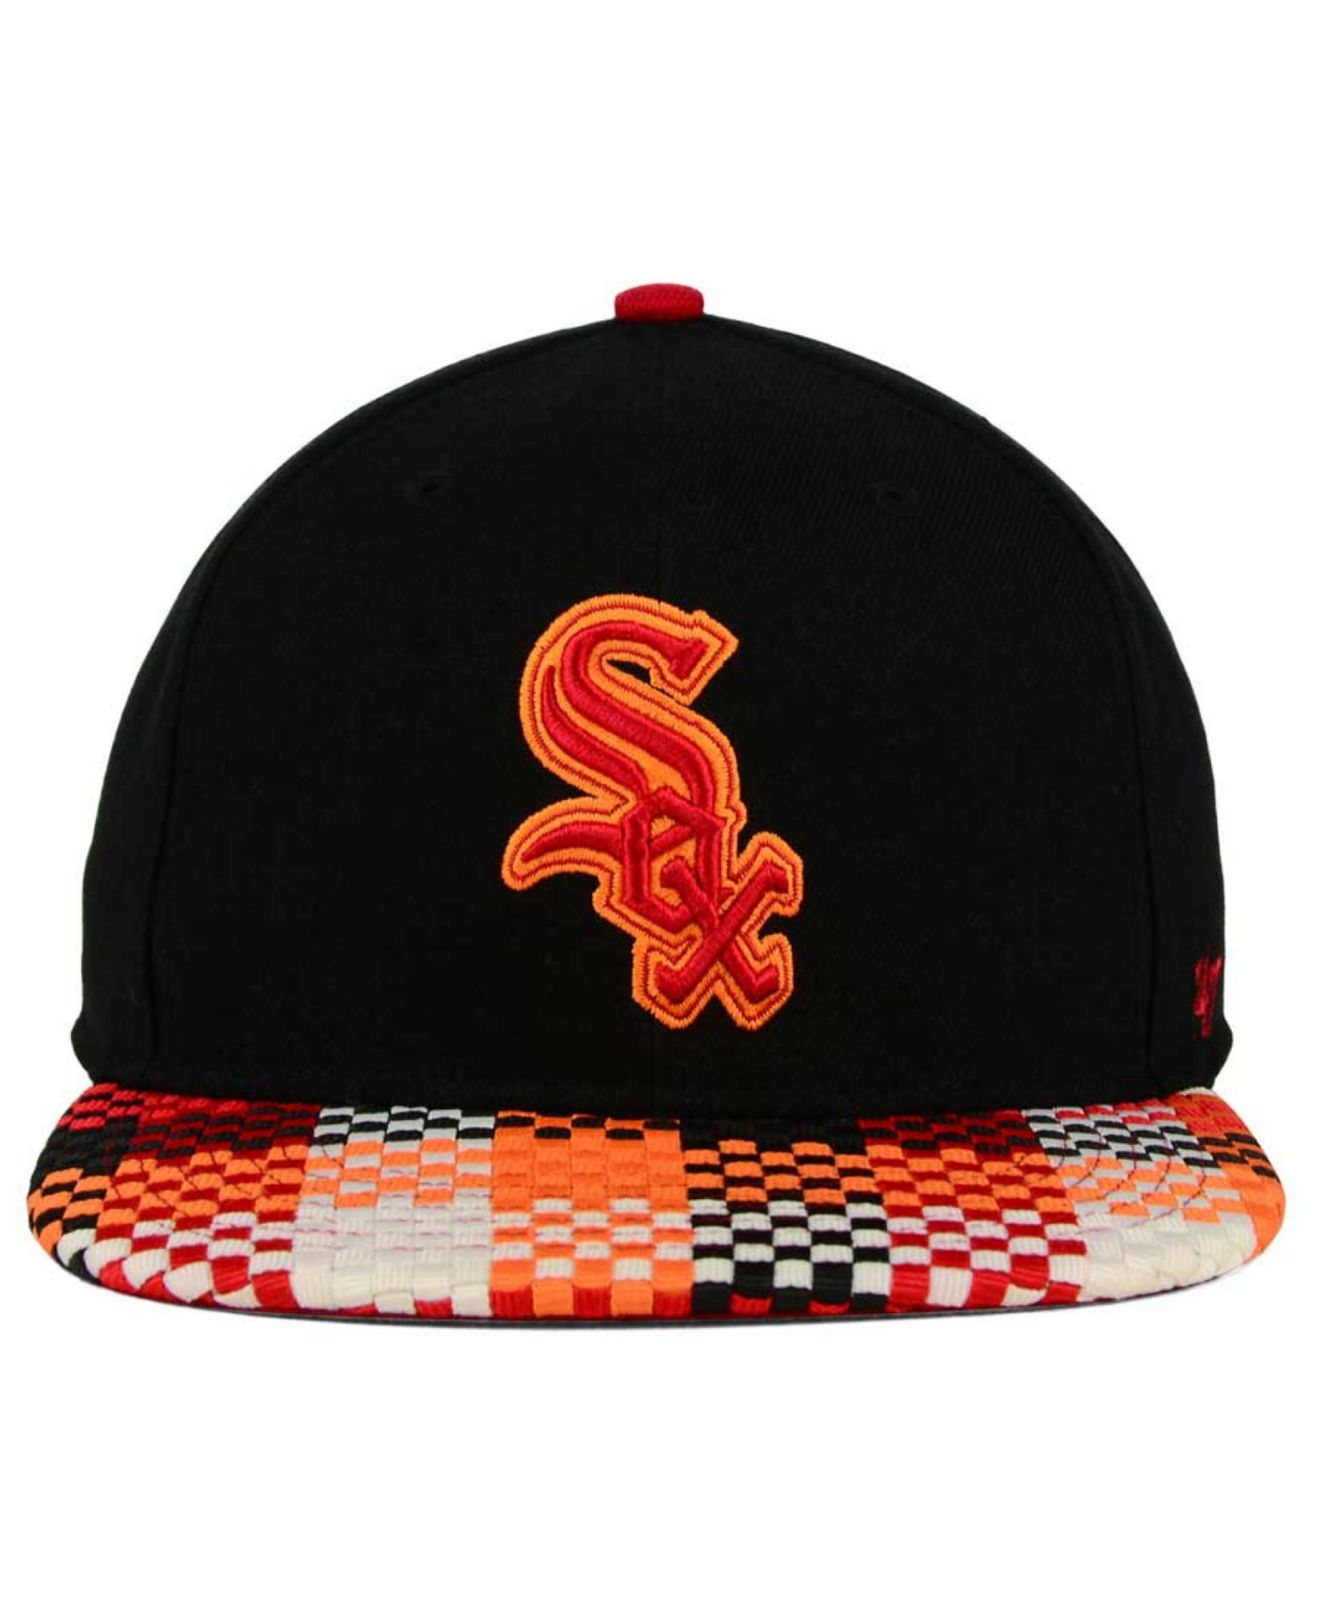 41e12062be07a ... low price coupon code for lyst 47 brand chicago white sox ruffian  snapback cap in black